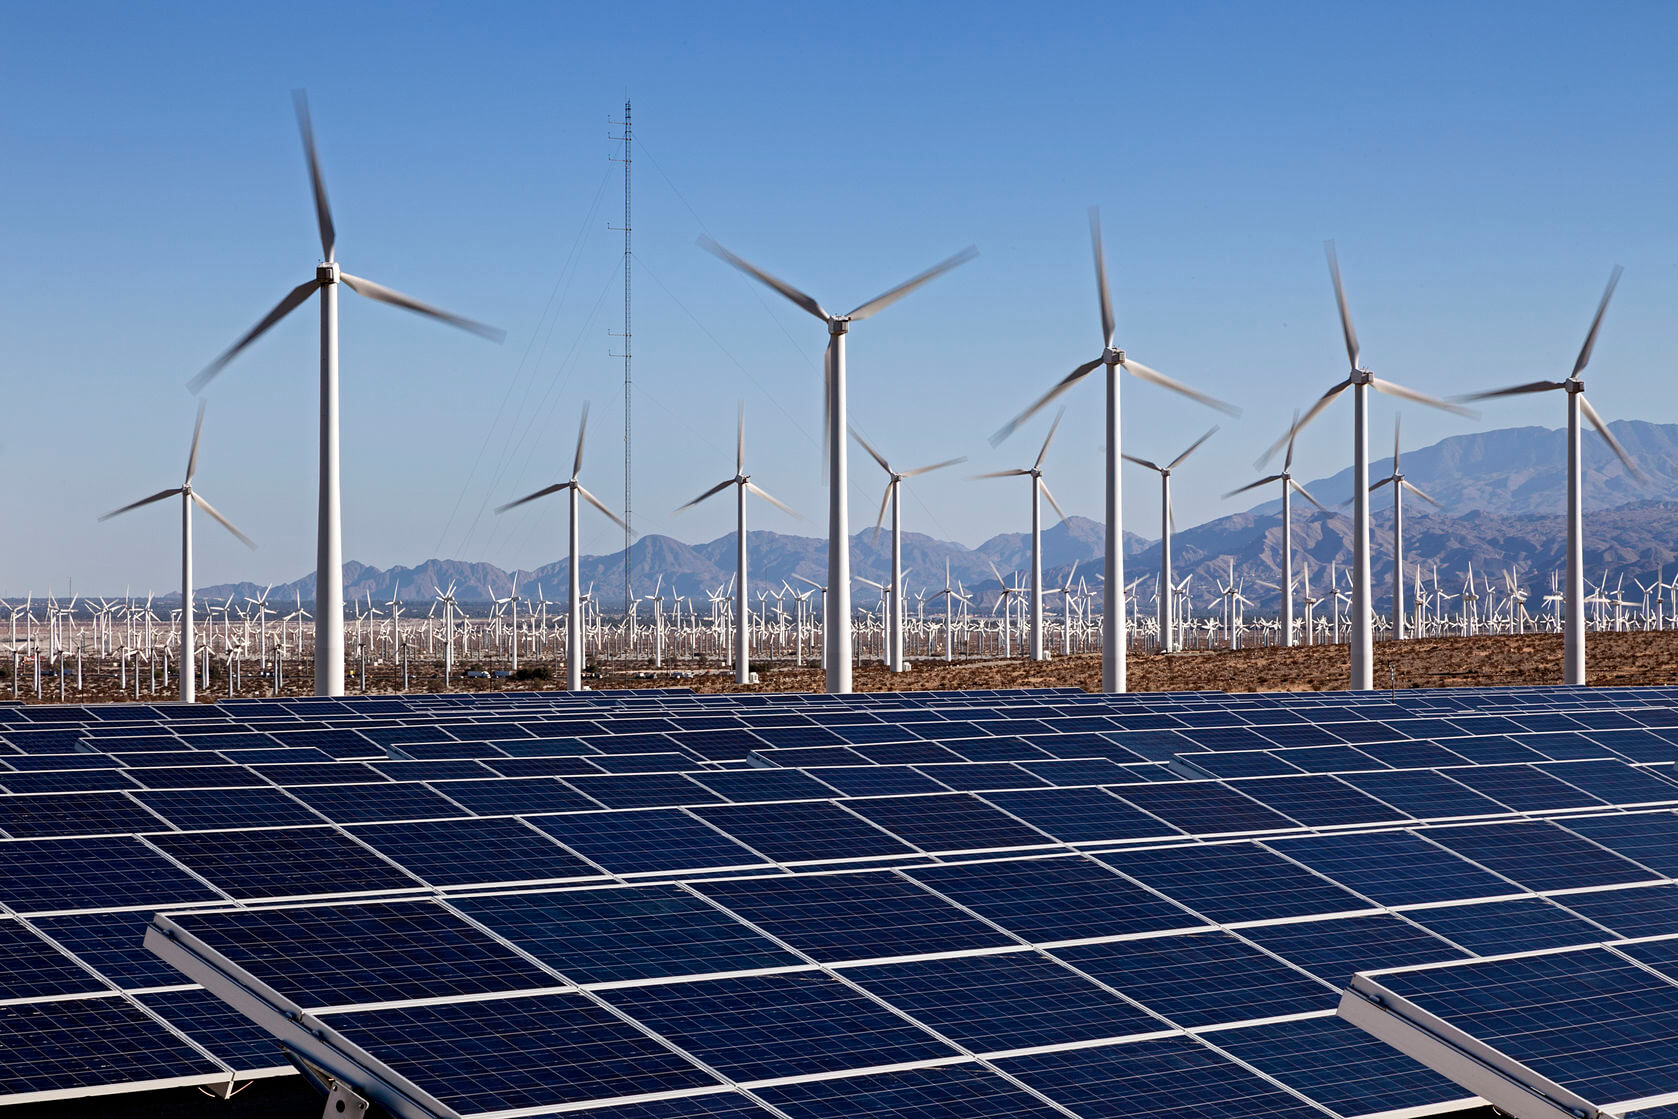 energy in australia Australia's energy policy has lost its way over the past couple of decades, which is unfortunate because the challenges - to move to a low-carbon economy without high prices - have never been.